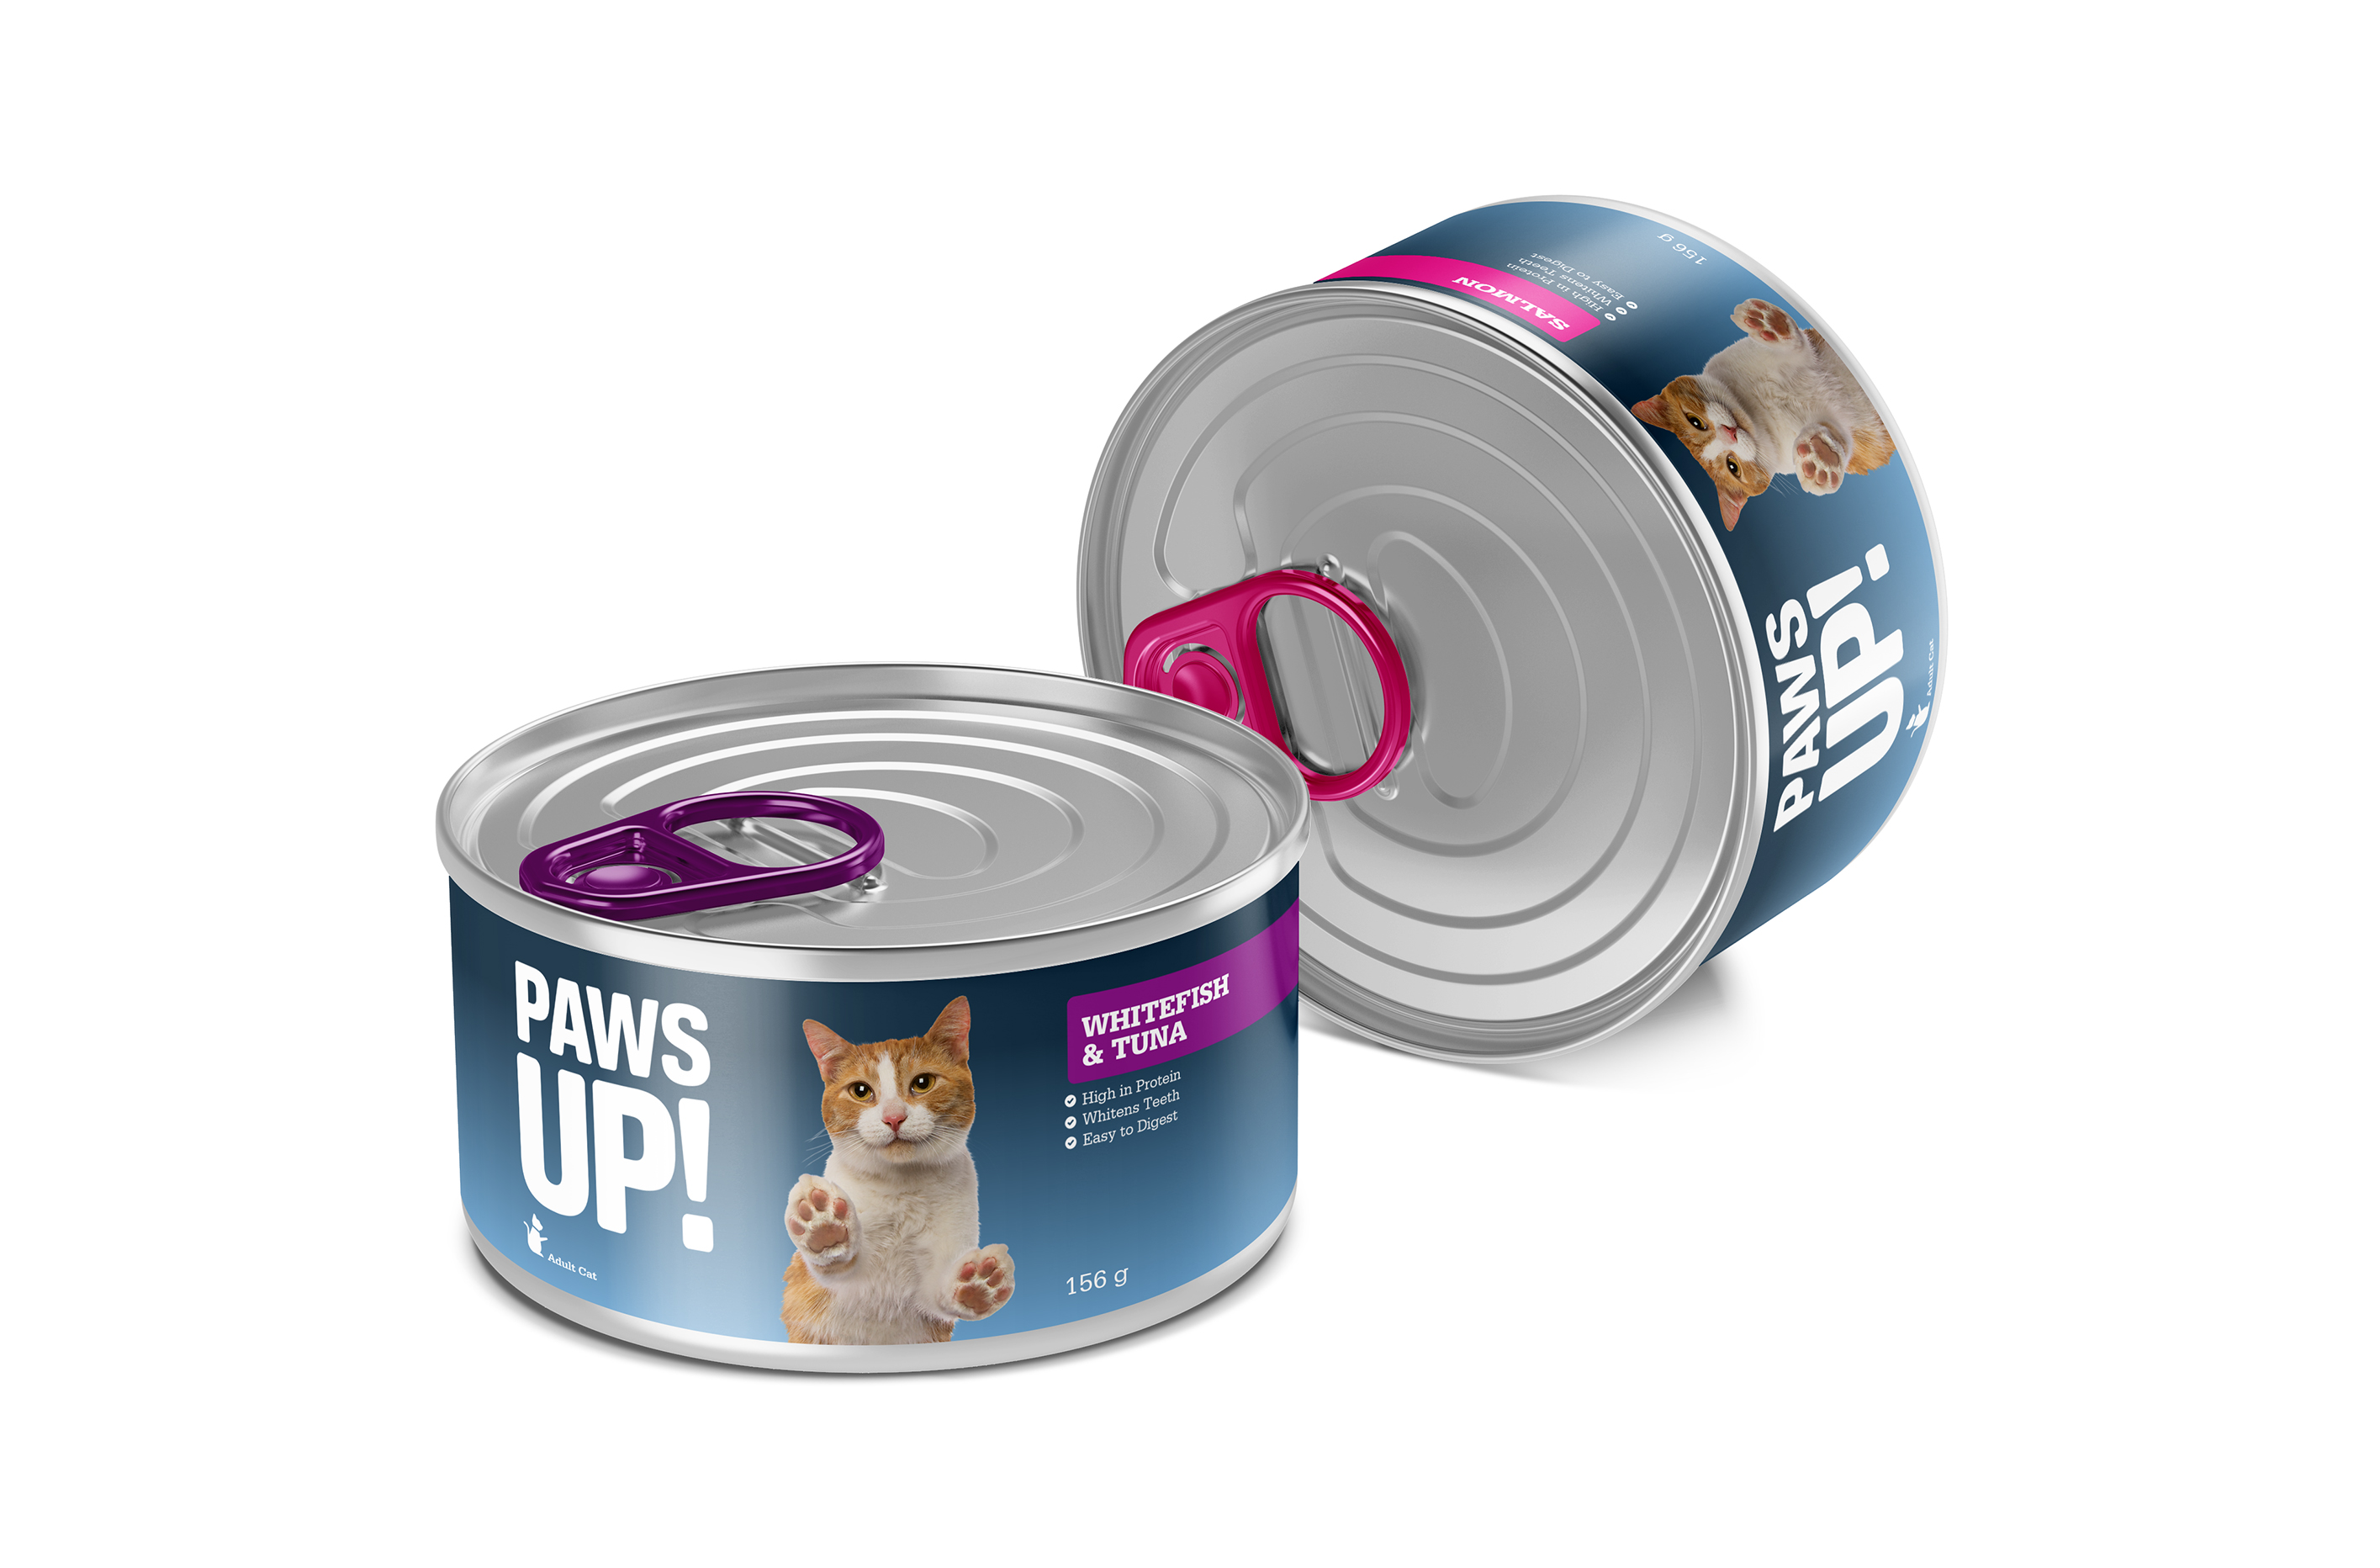 Paws Up Cat Cans